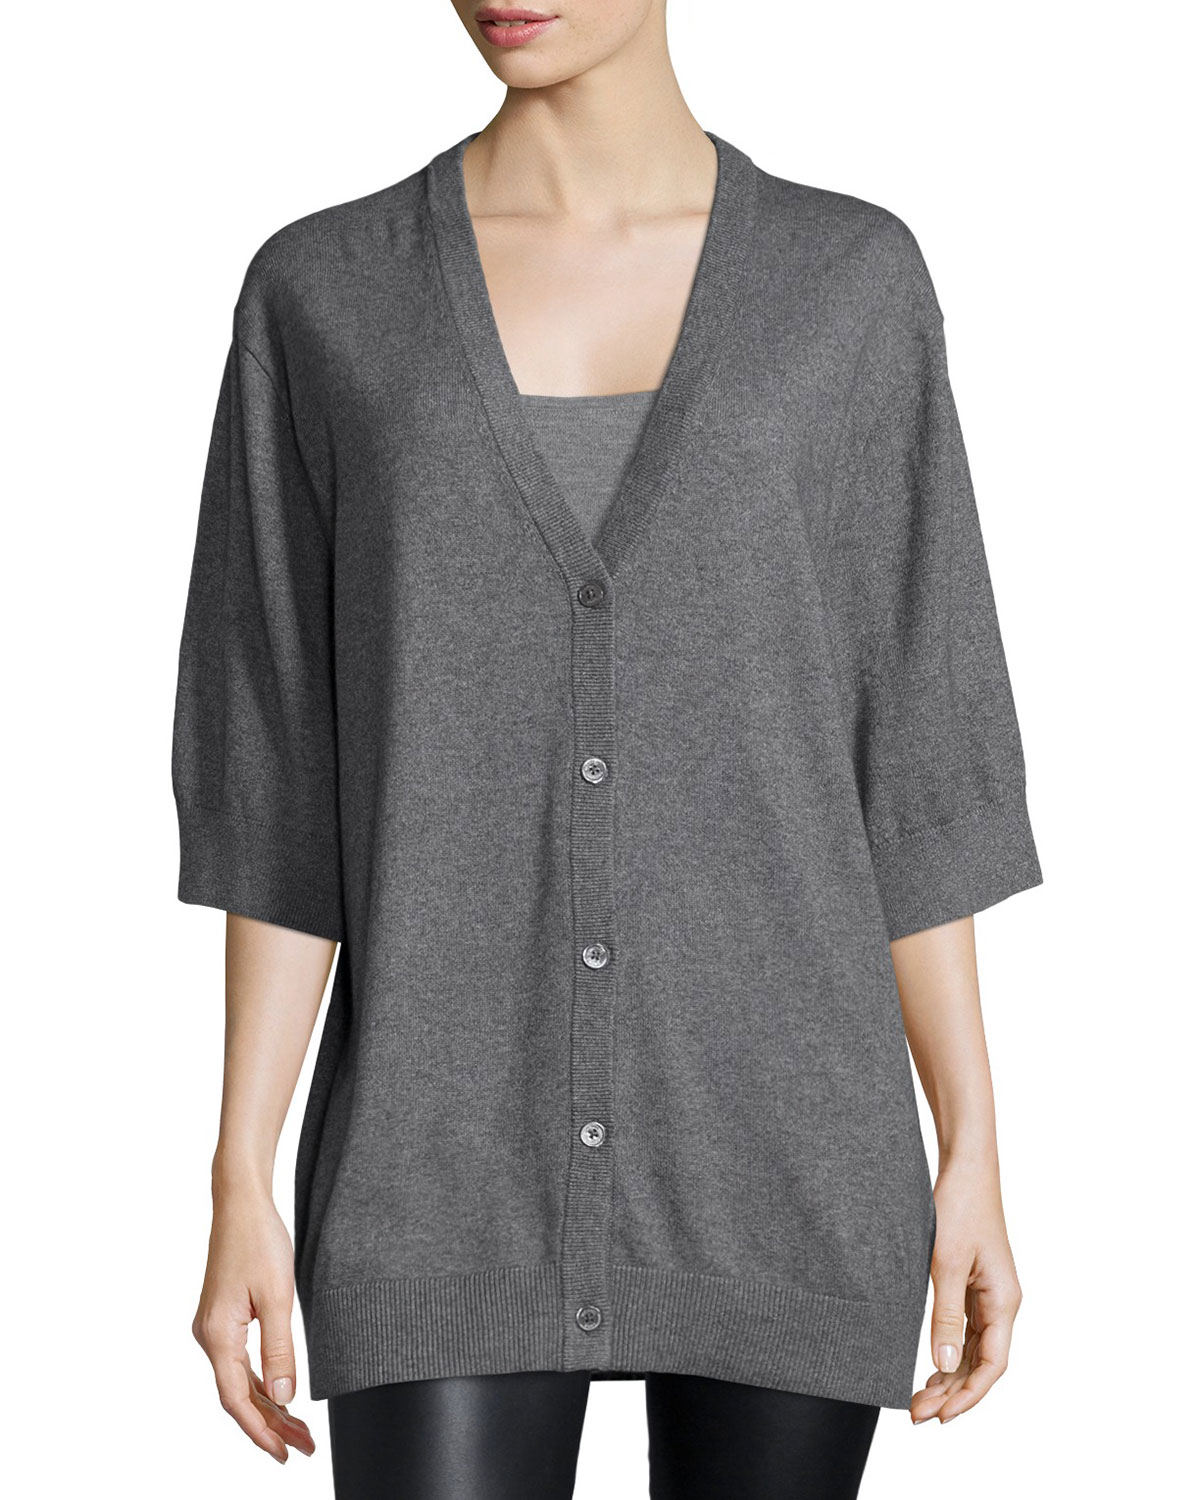 Michael kors Short-sleeve Button-front Cardigan in Gray | Lyst